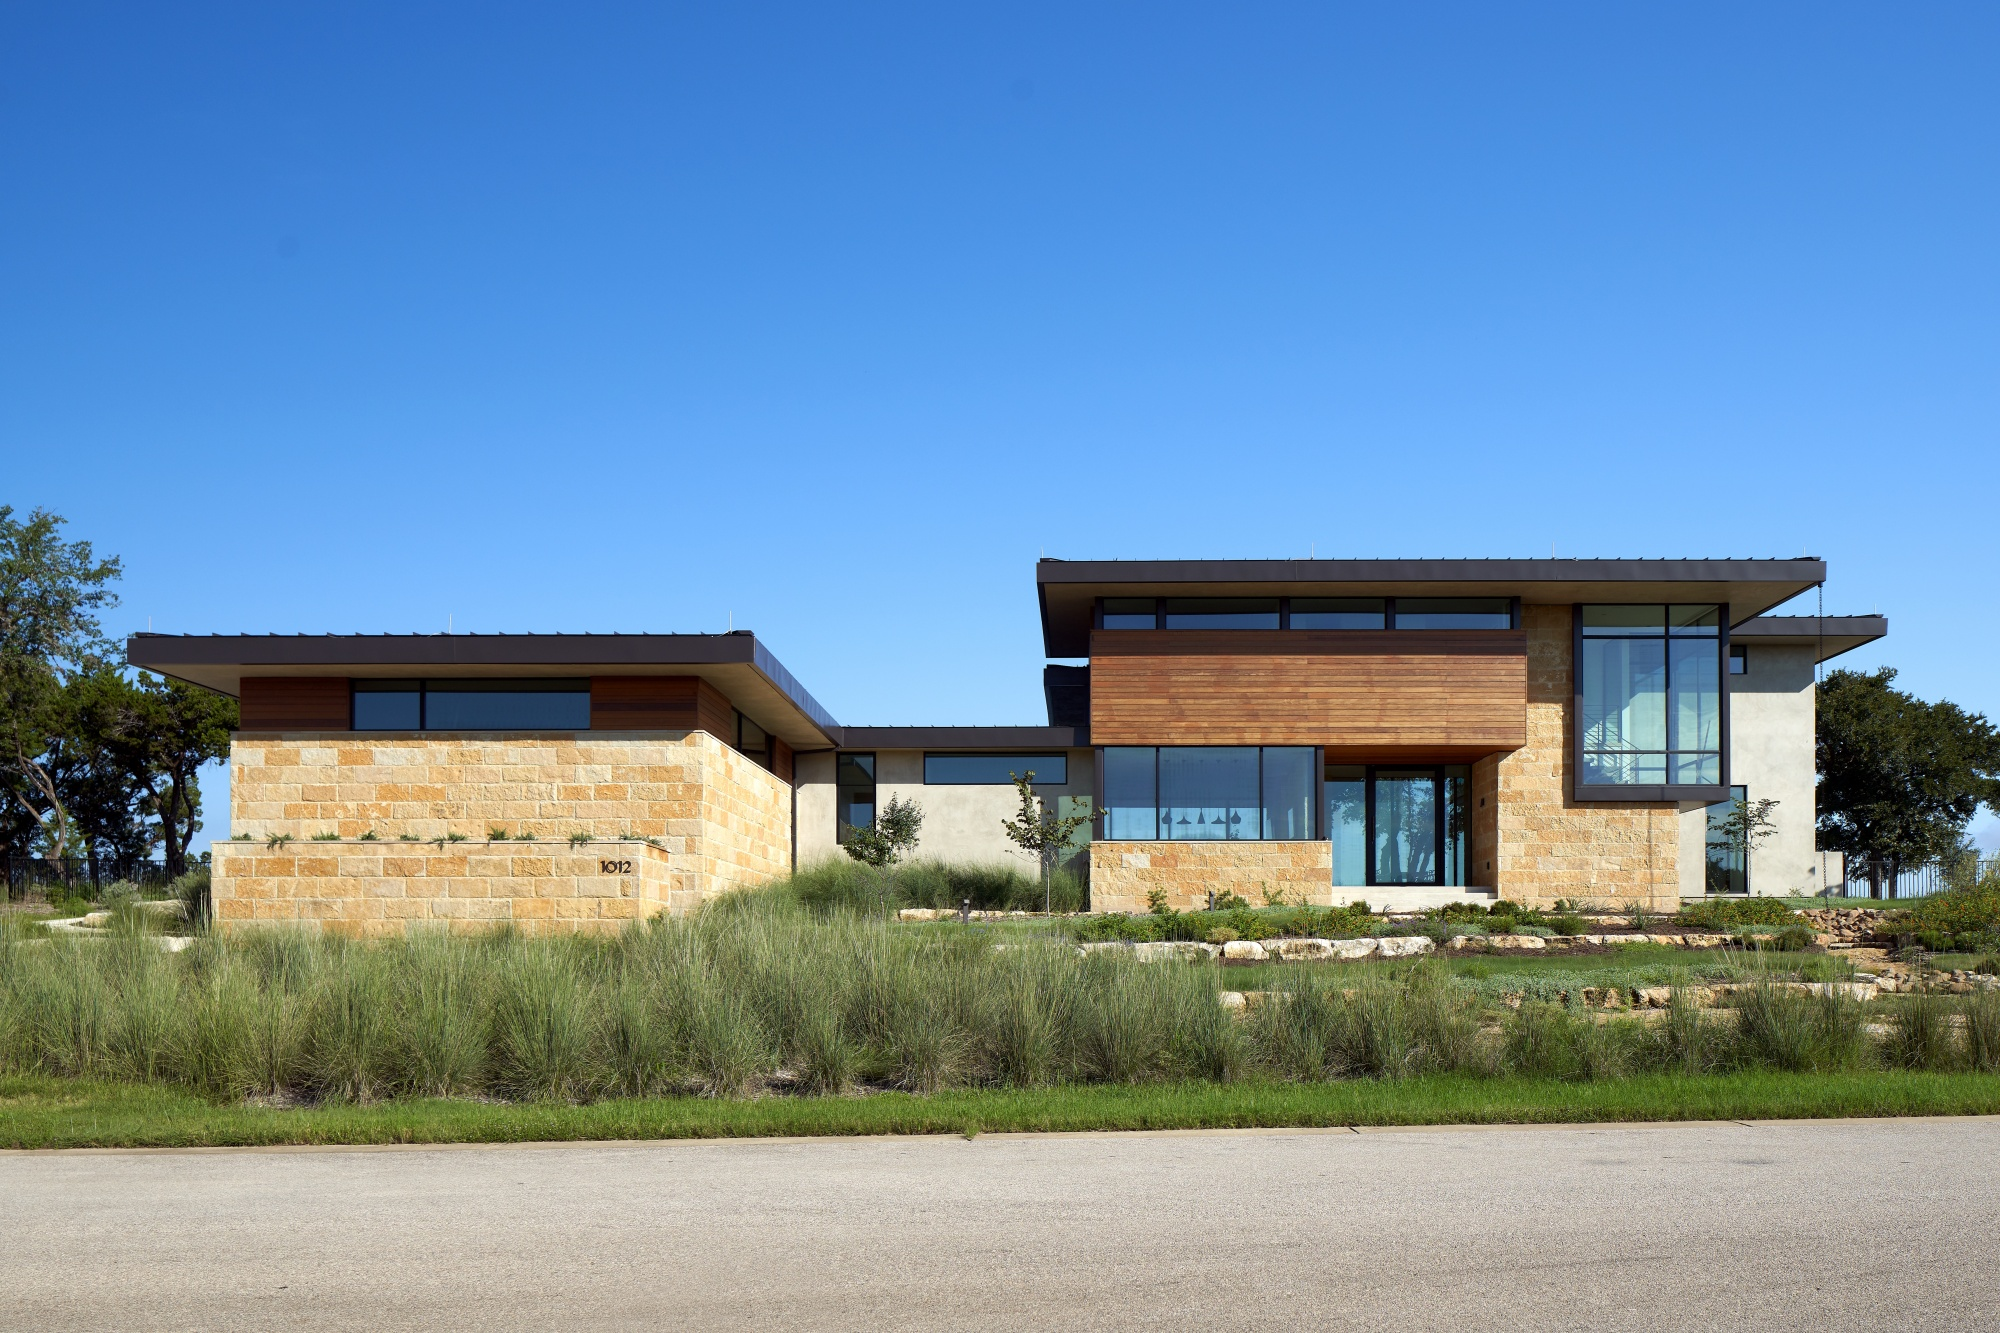 Hill Country palette of materials provides warmth and familiarity.